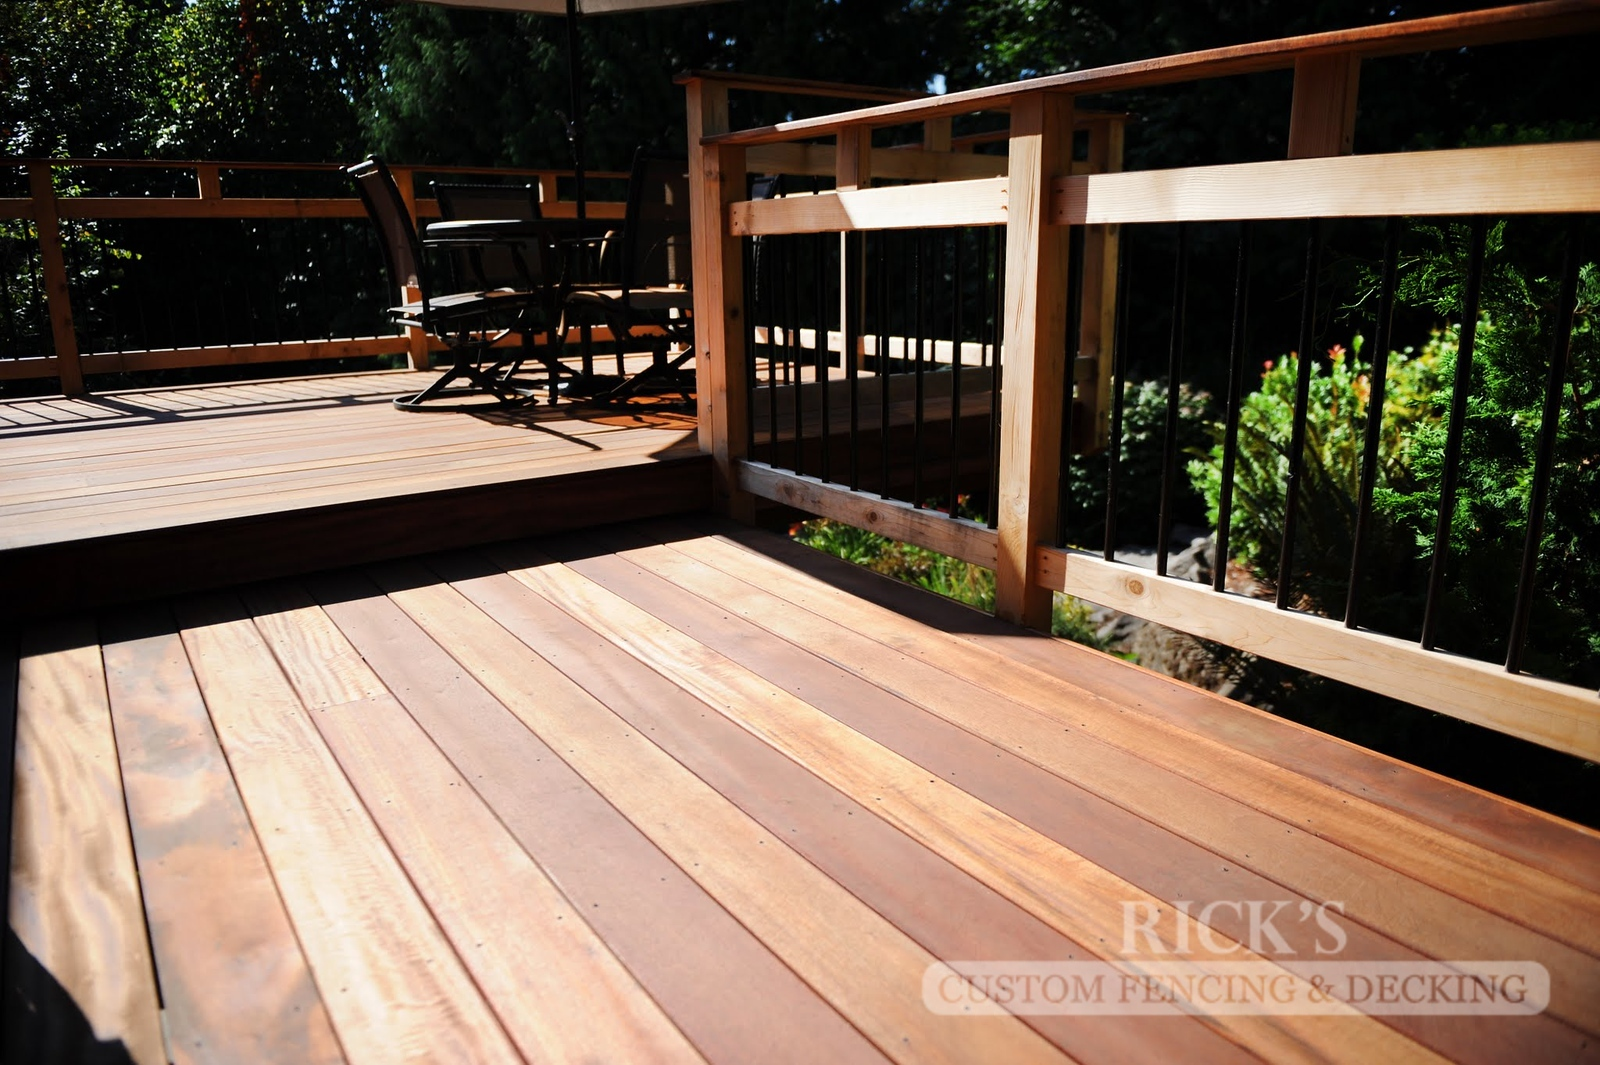 1122 - TigerWood Hardwood Decking